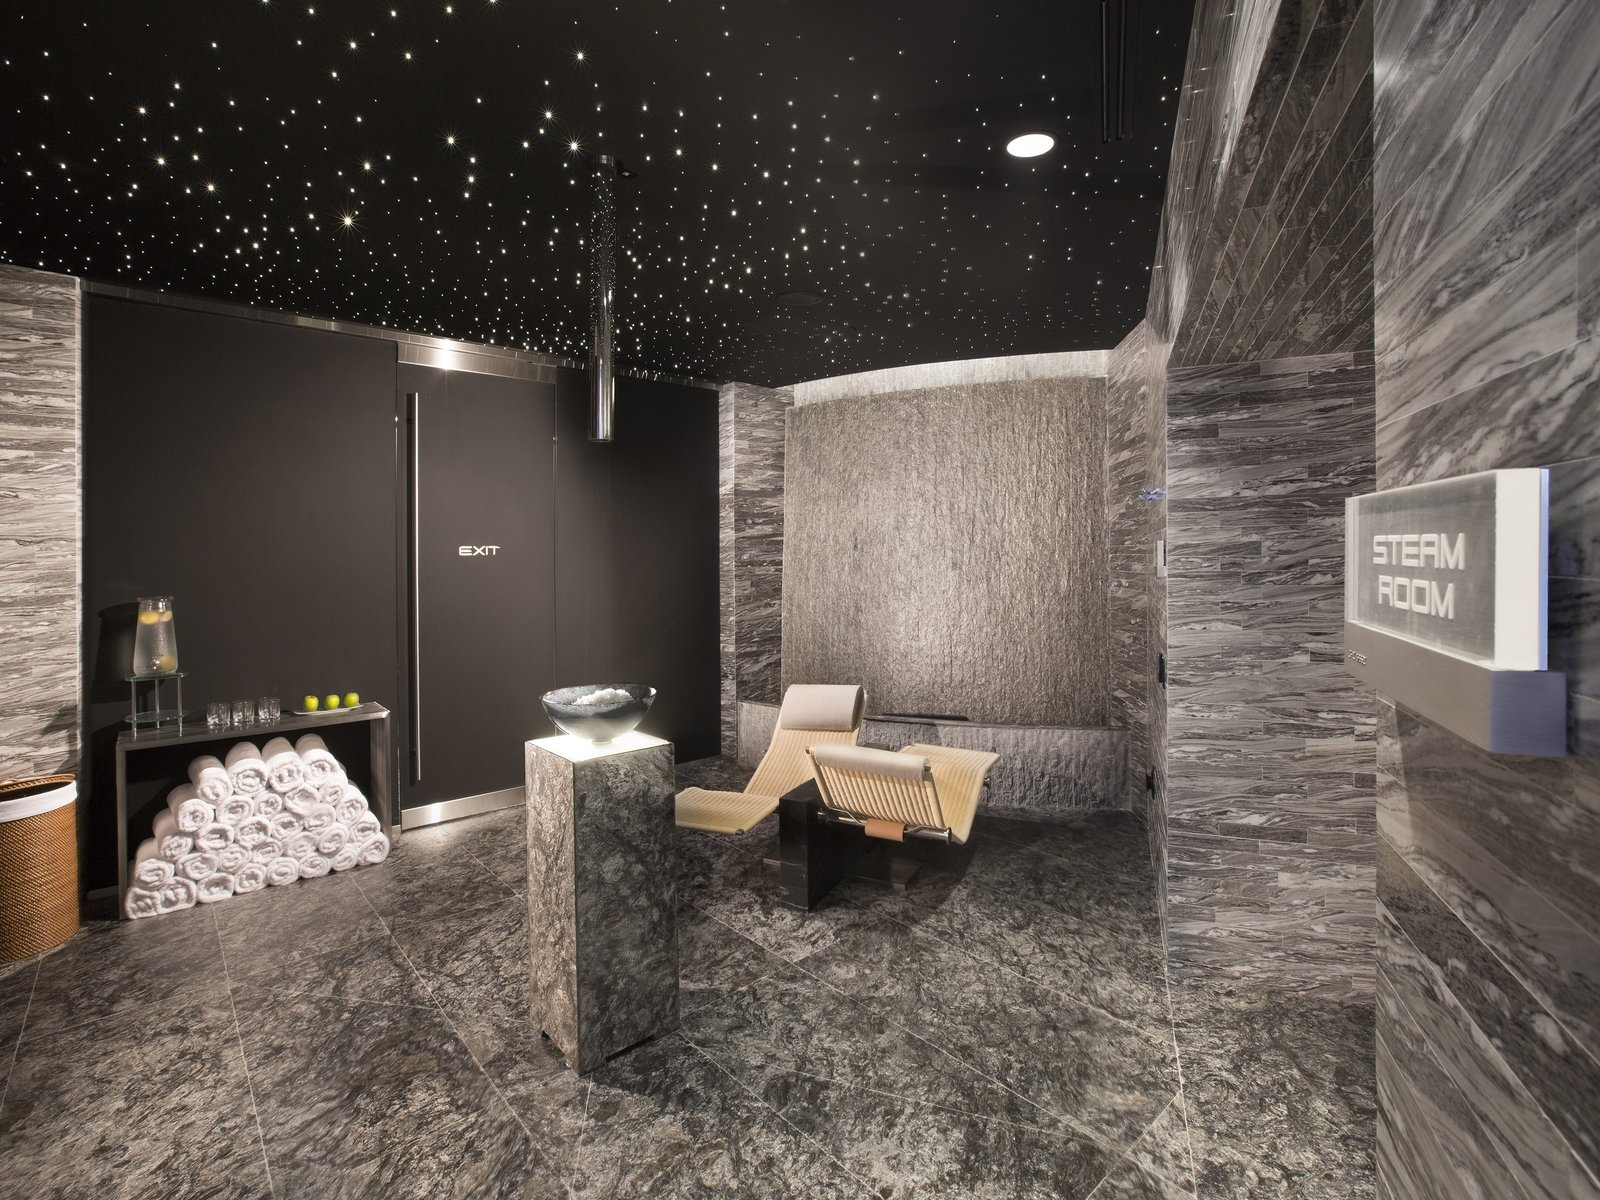 The state-of-the-art spa includes a steam room and sauna, treatment rooms, and Vichy showers. A fitness center, yoga room, and salon are also in the building.